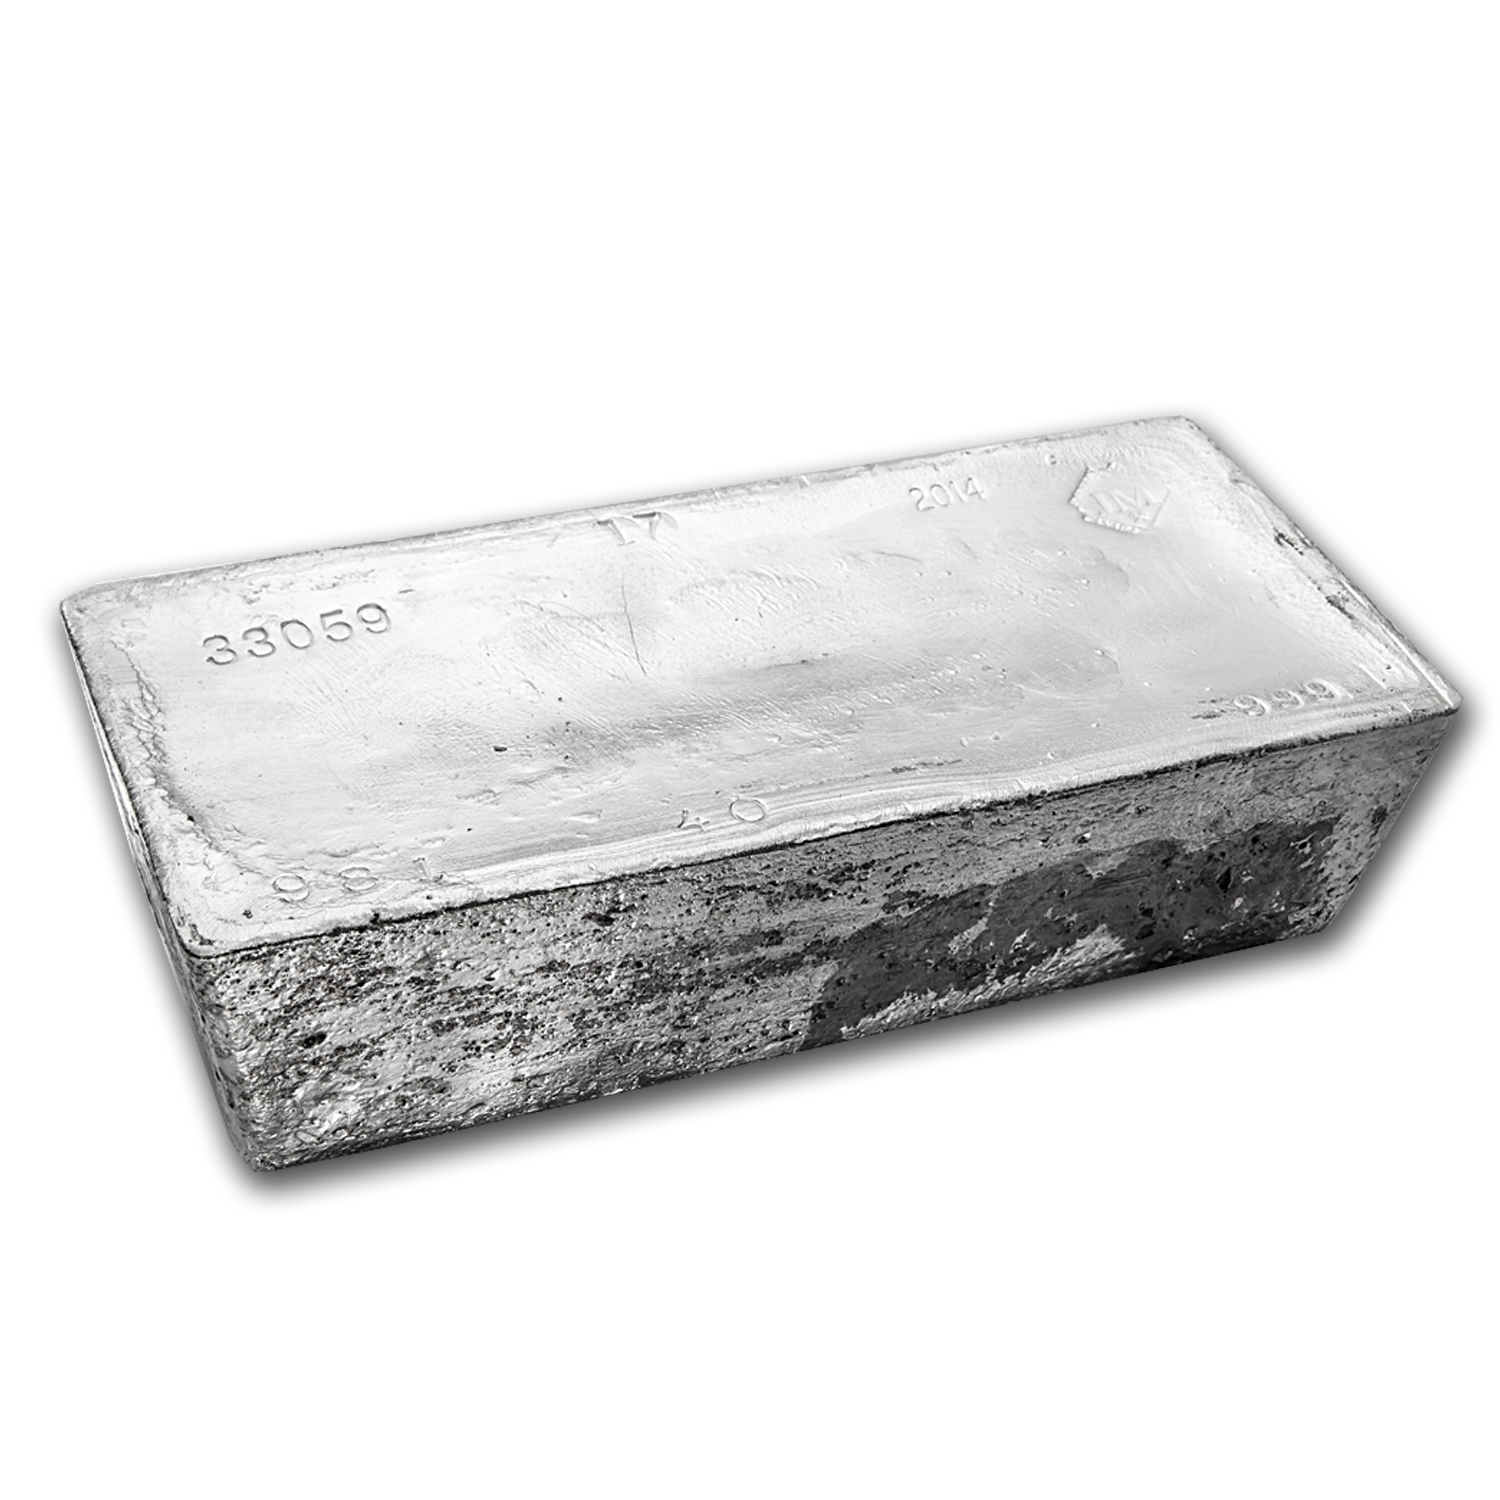 977.40 oz Silver Bars - Johnson Matthey